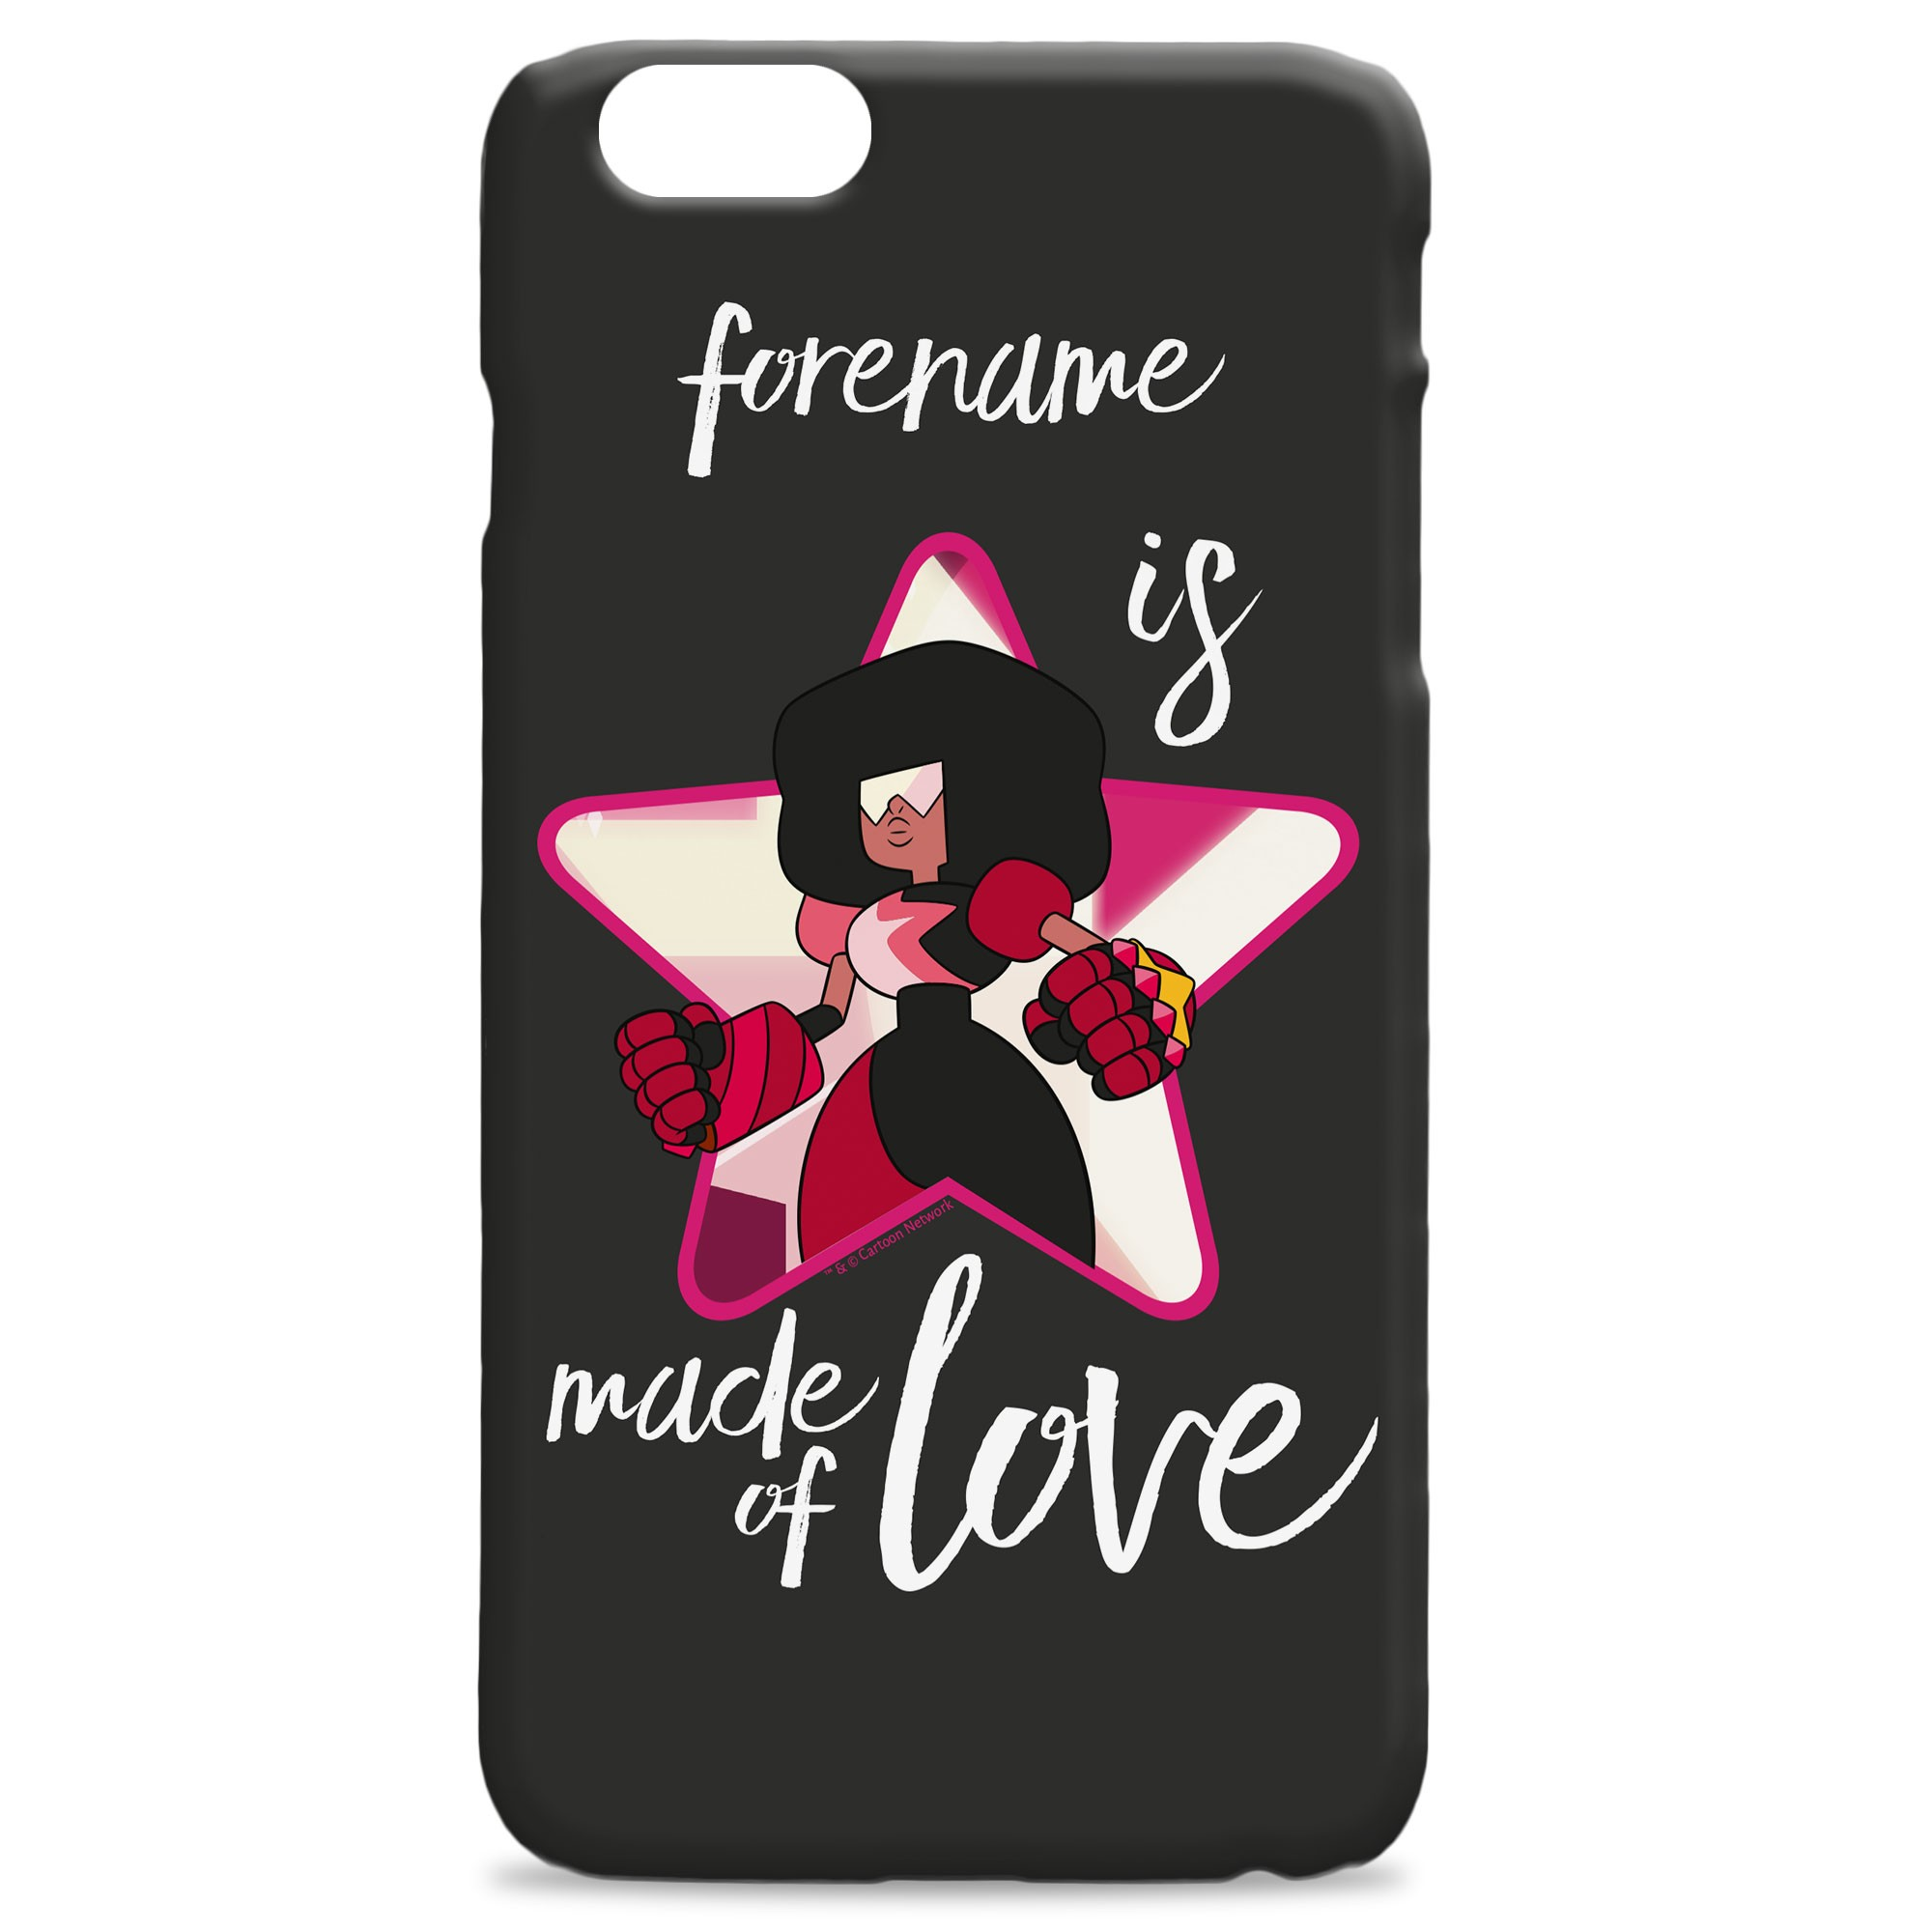 Steven Universe Made Of Love iPhone Case